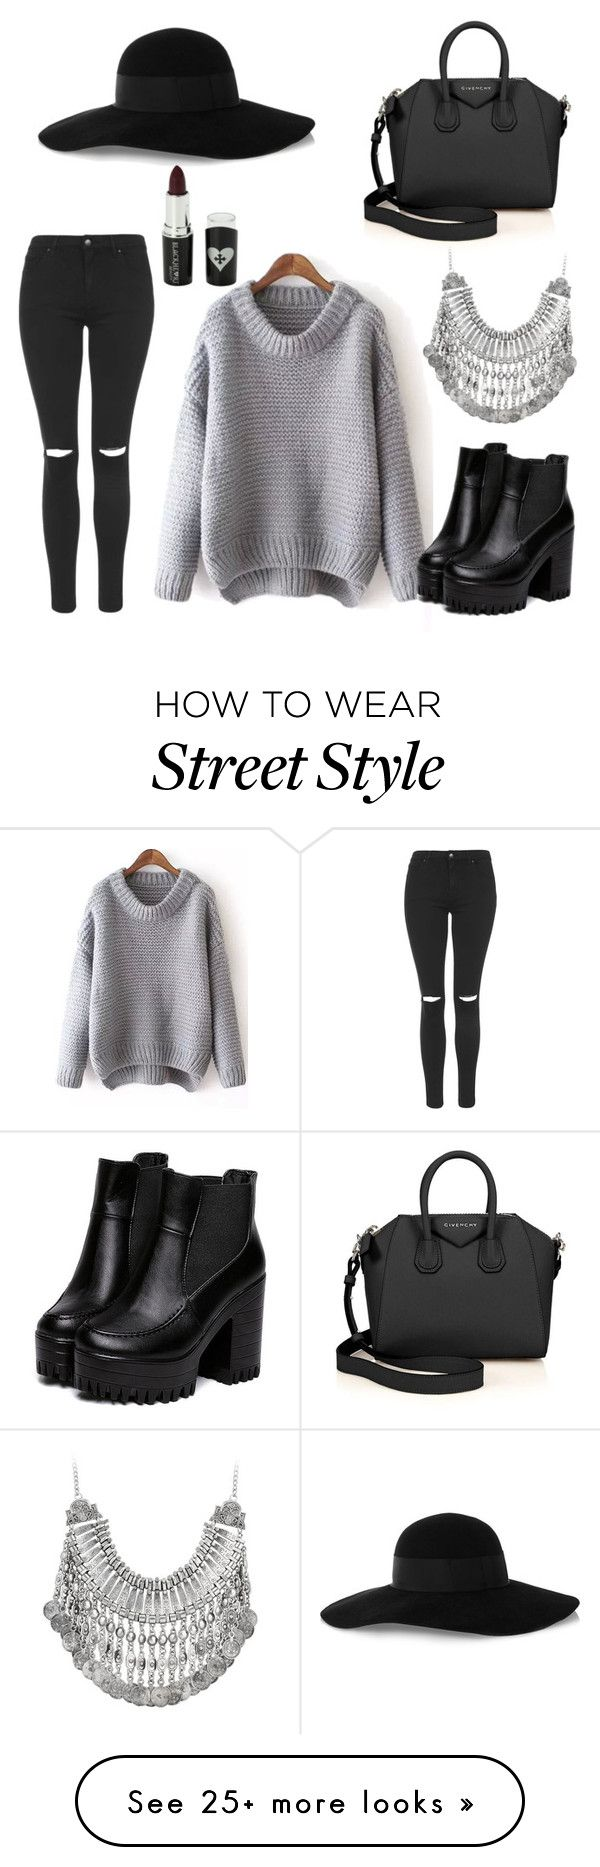 """Street style/casual"" by chloebreann on Polyvore featuring Topshop, Eugenia Kim, Givenchy and Voom"